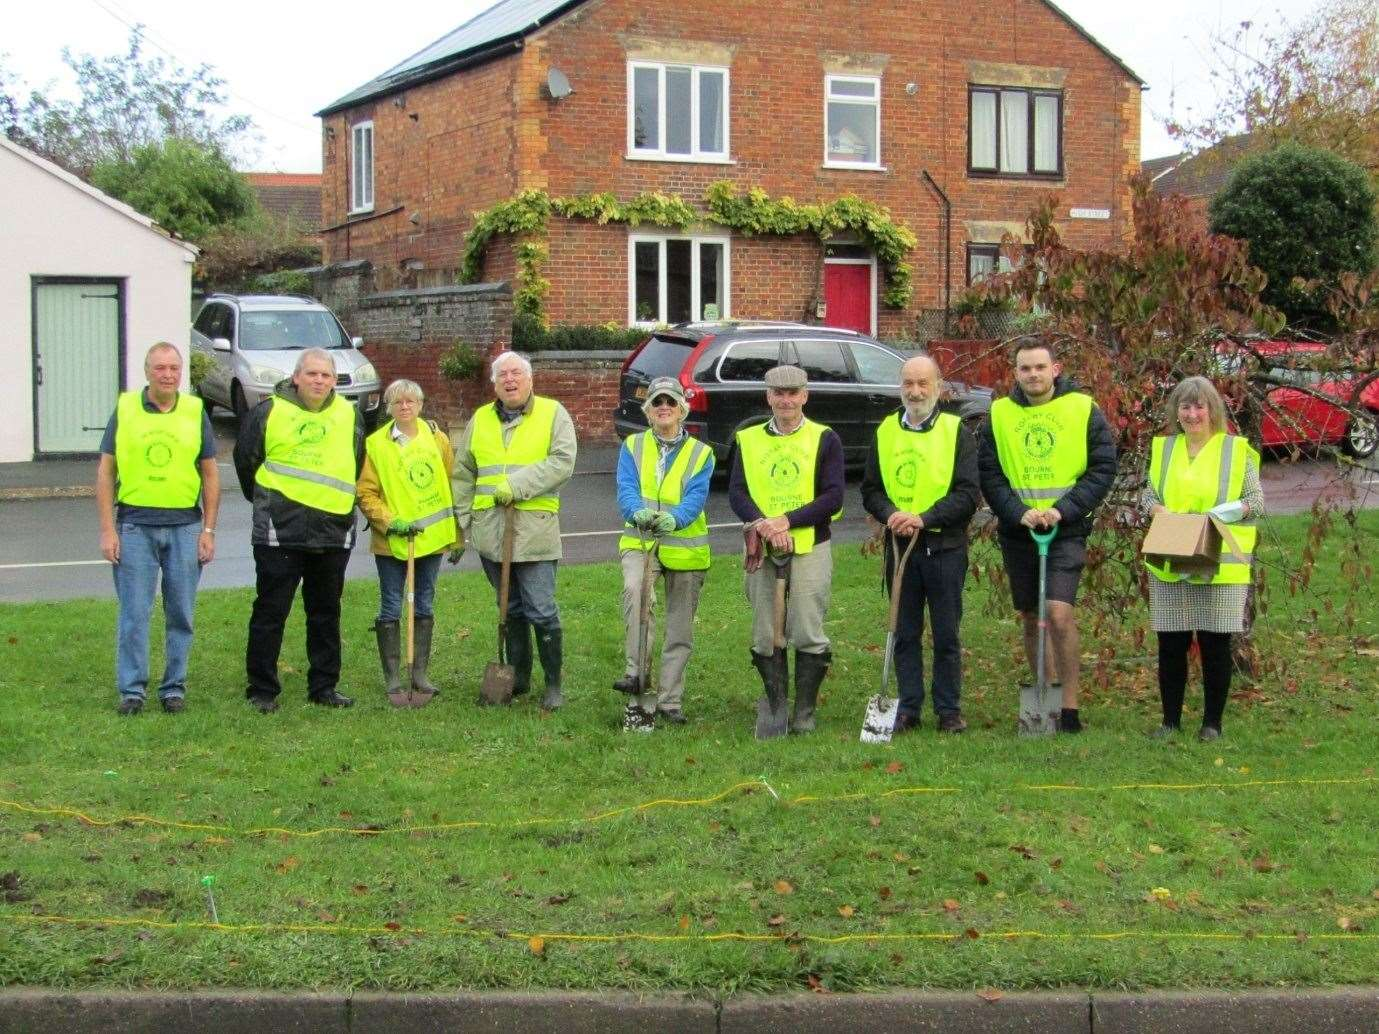 Rotarians from the Rotary Clubs of Bourne and Bourne St Peter join forces to plant crocus corms and daffodils on Morton Village Green